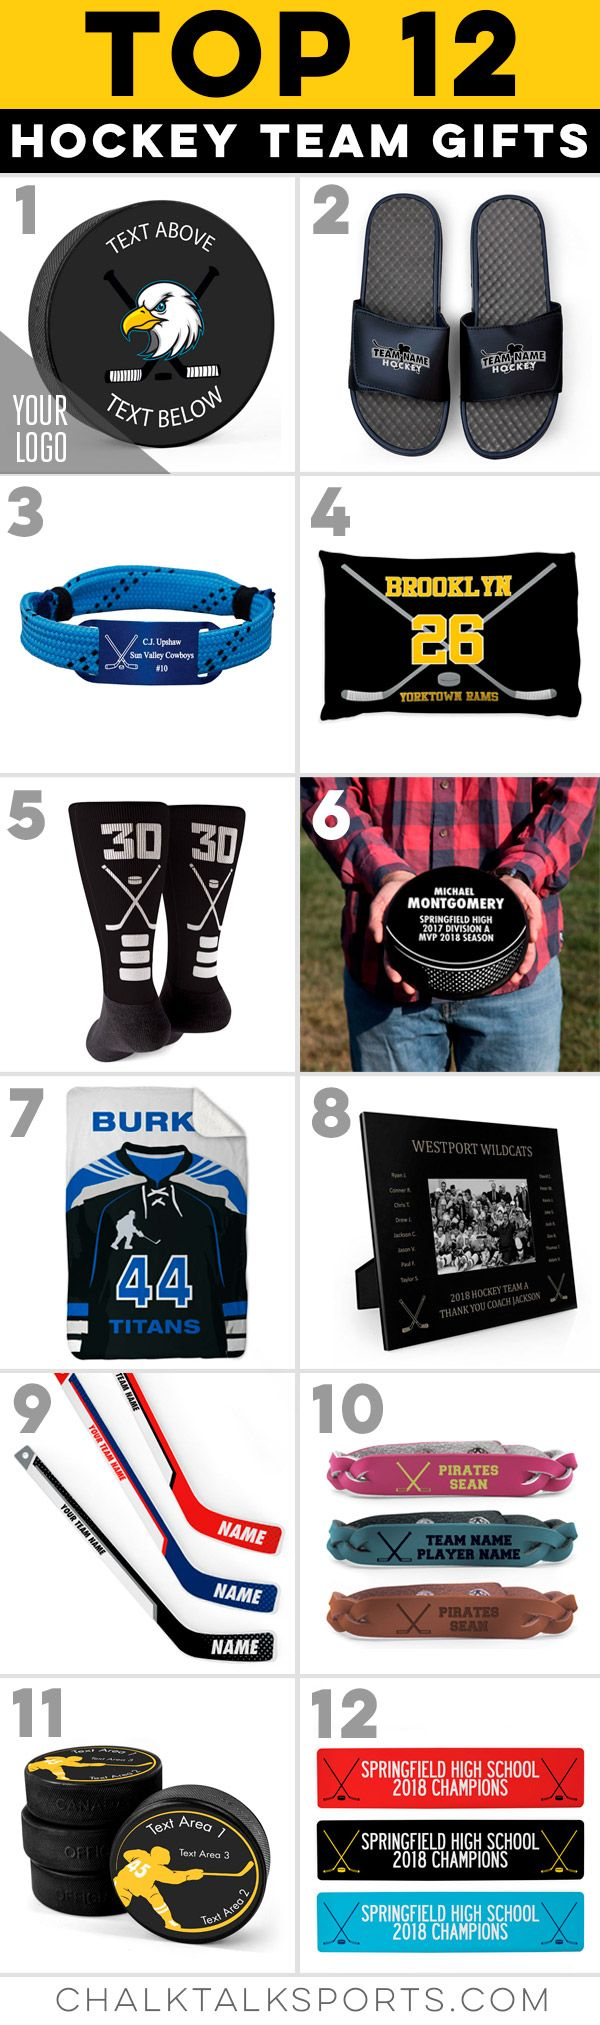 Our Top Hockey Team Gifts Are The Perfect Way To Celebrate The End Of The Season Or Any Time Of Year Hockey Team Gifts Hockey Player Gifts Hockey Teams